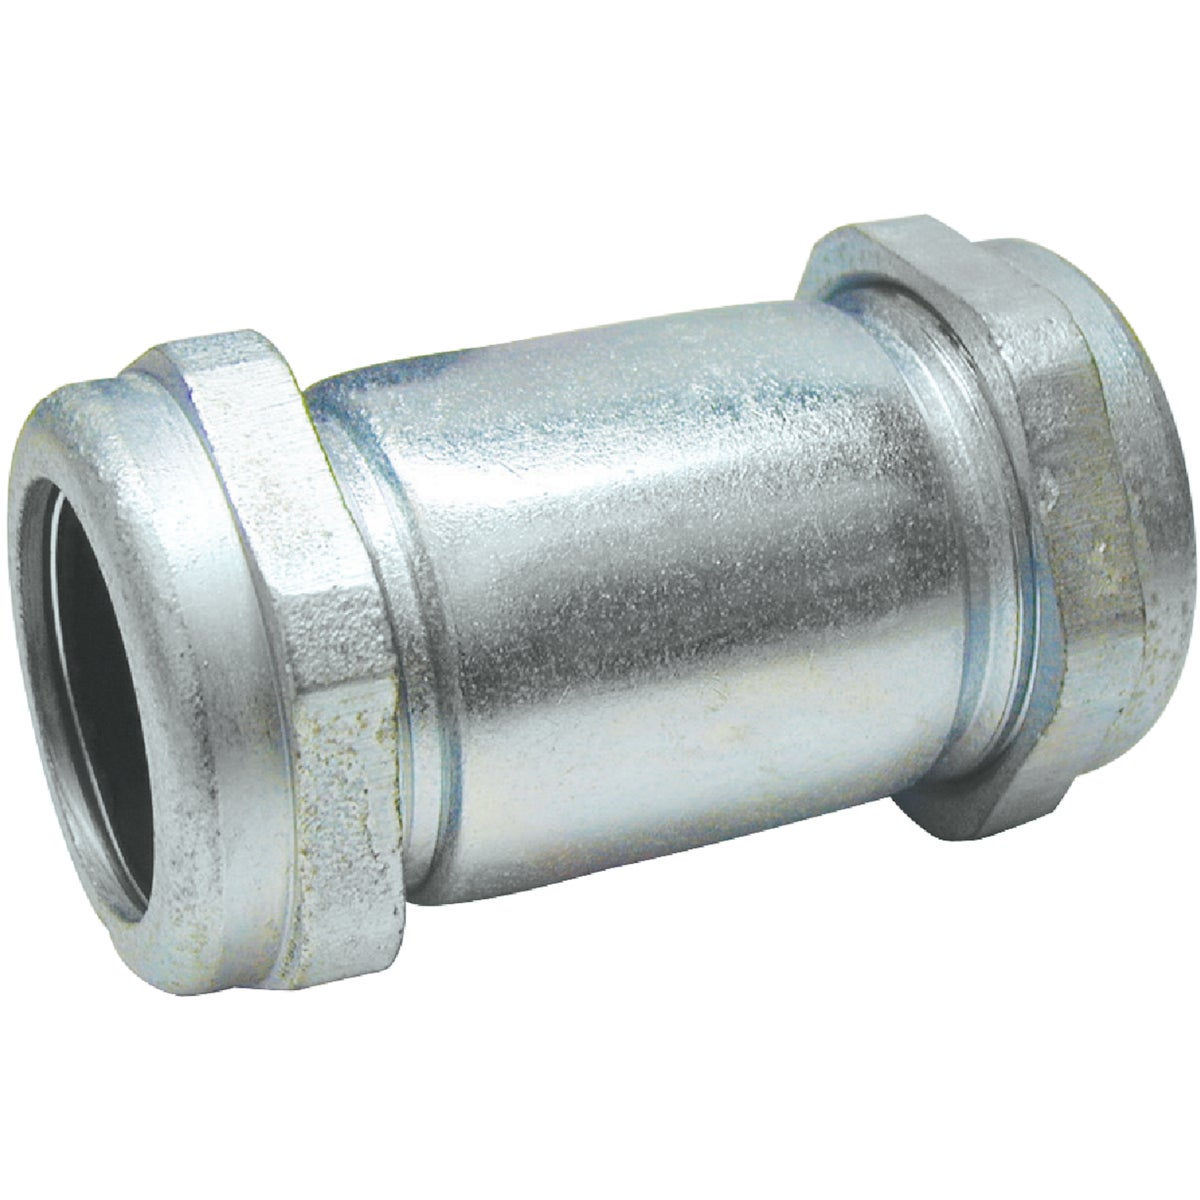 1-1/2X5 GALV COUPLING - 160-007 by Mueller B K